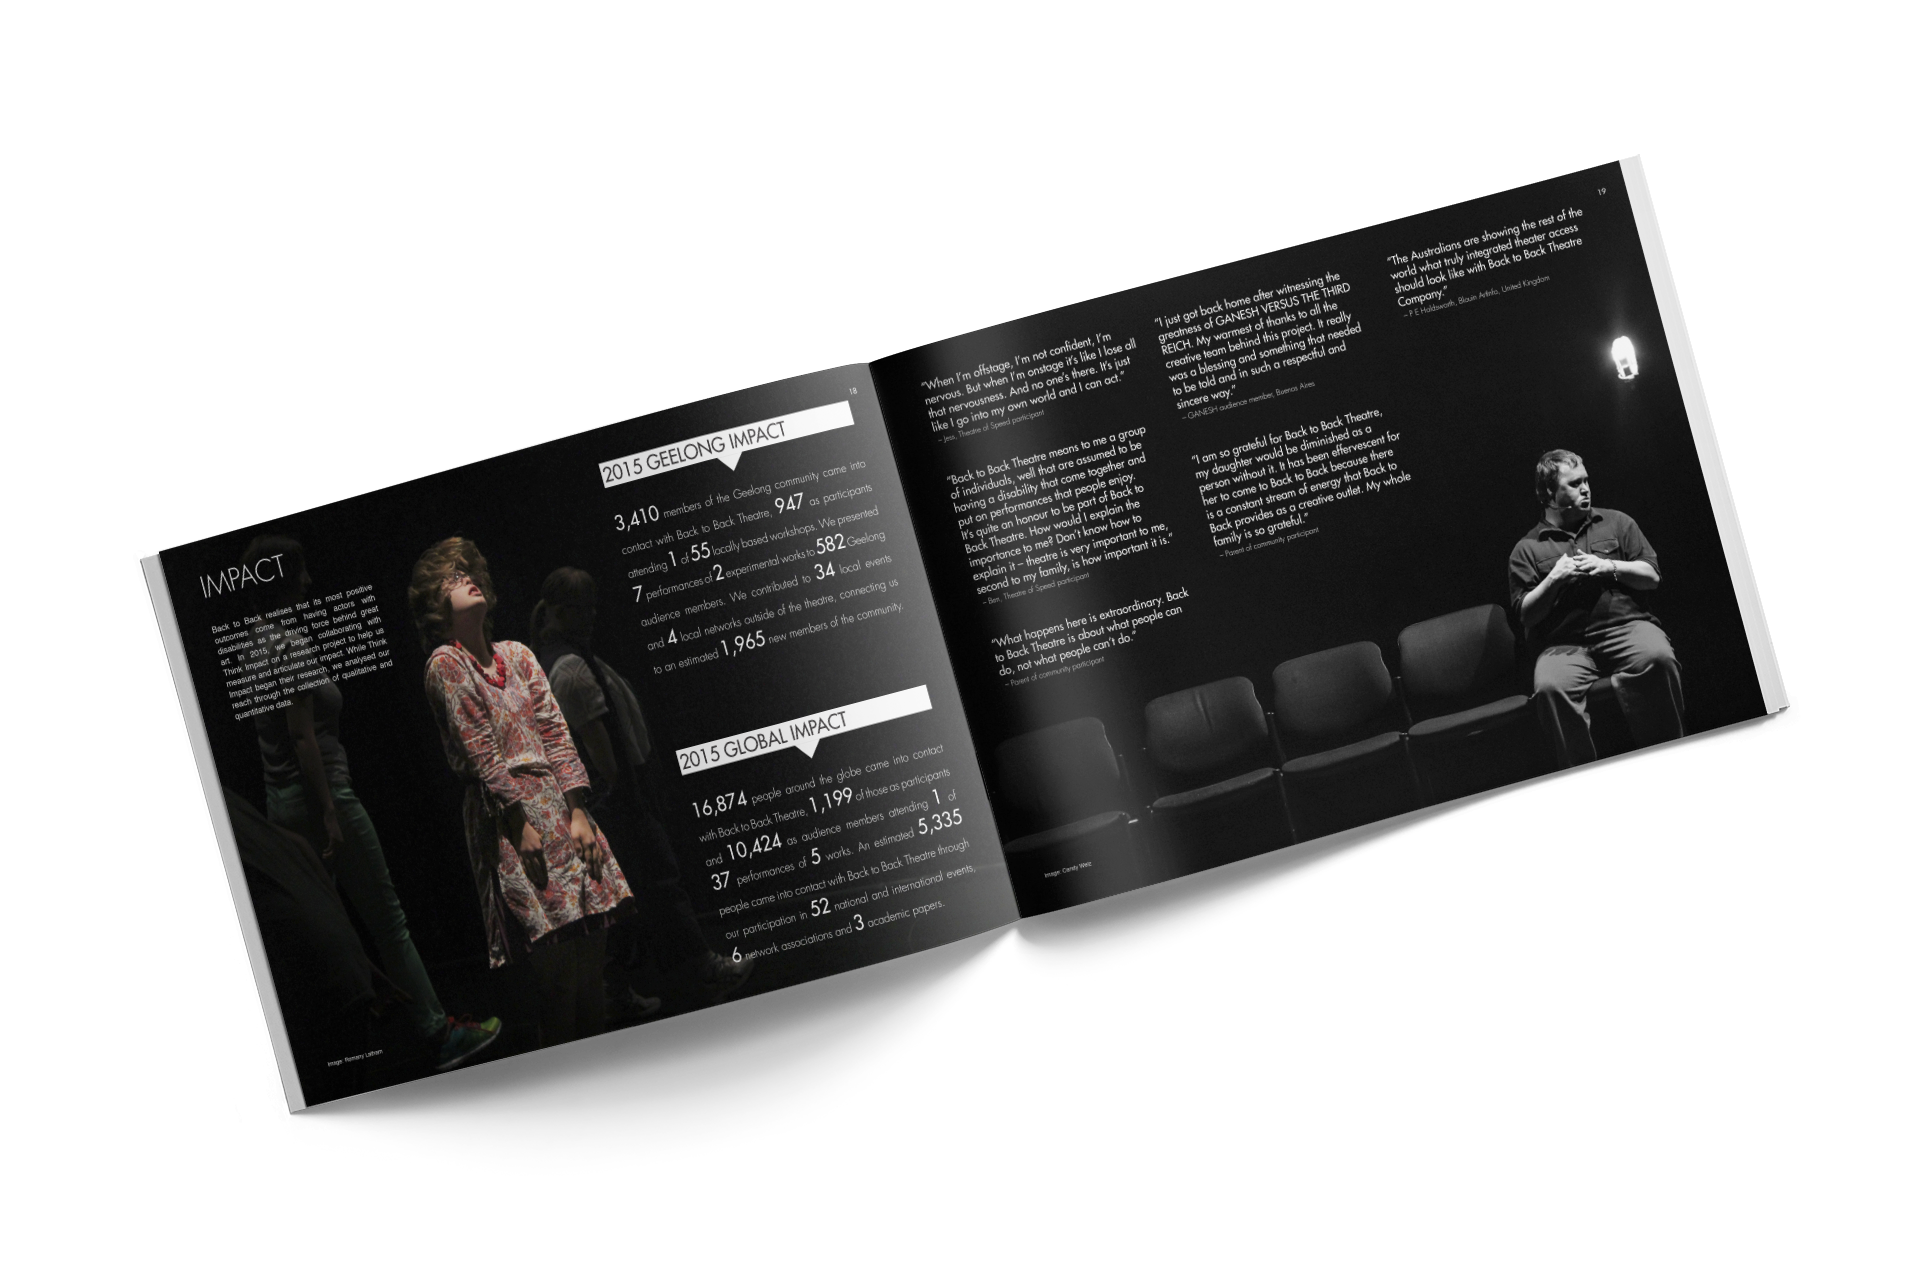 Back to Back Theatre's 2015 Year in Review — Spread featuring information on impact